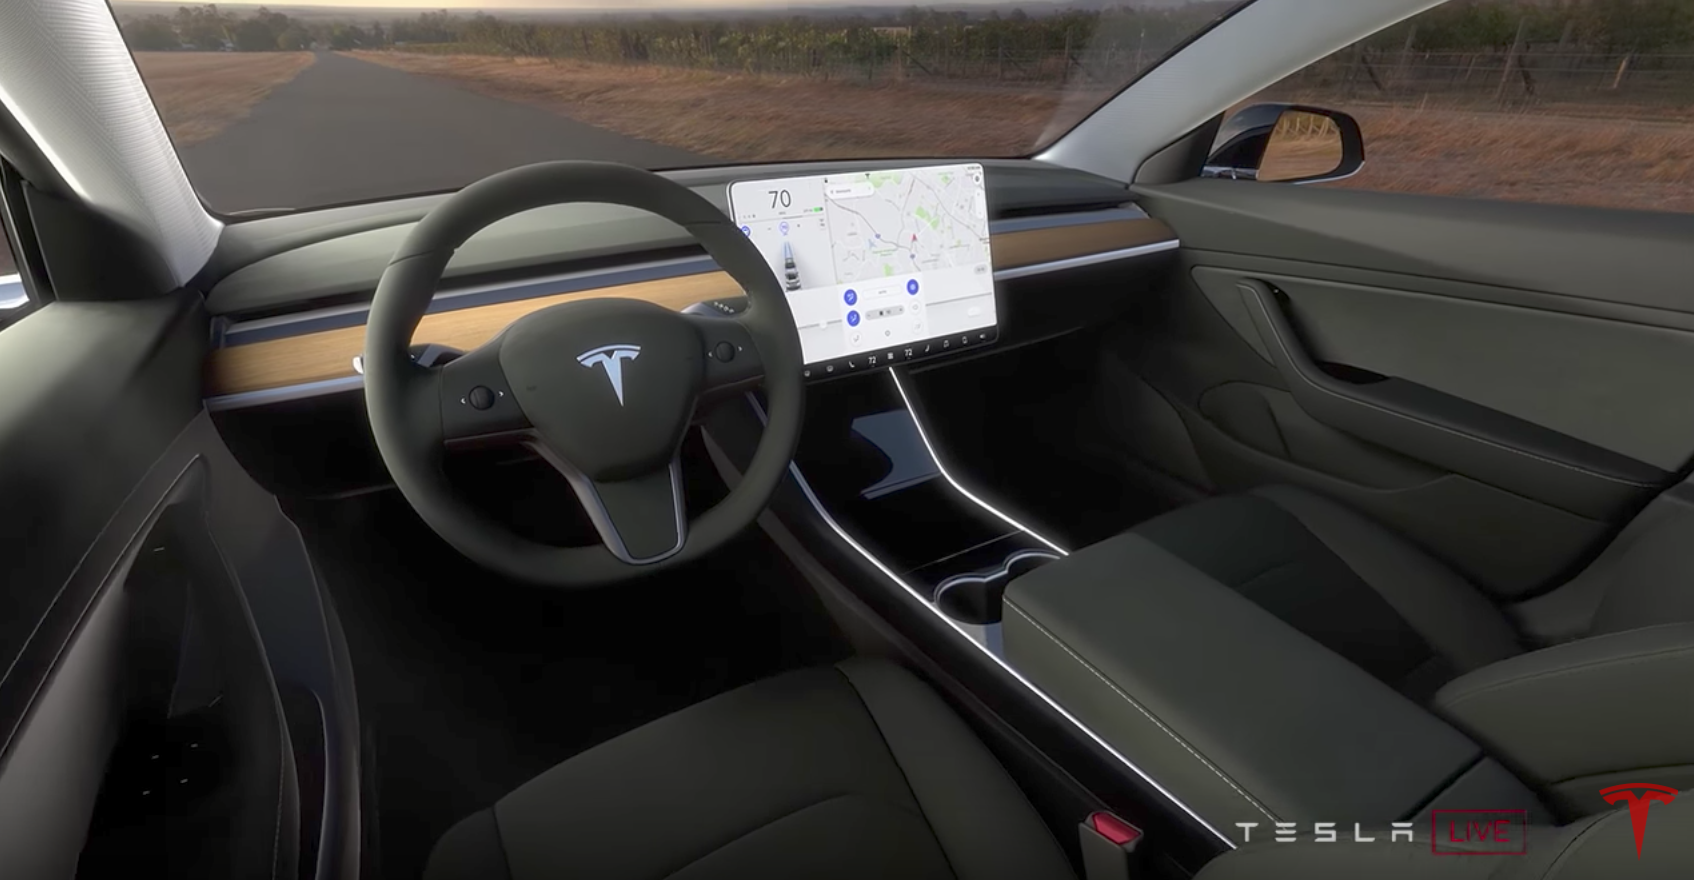 4 highlights from motor trend 39 s tesla model 3 test drive for Tesla model 3 interieur